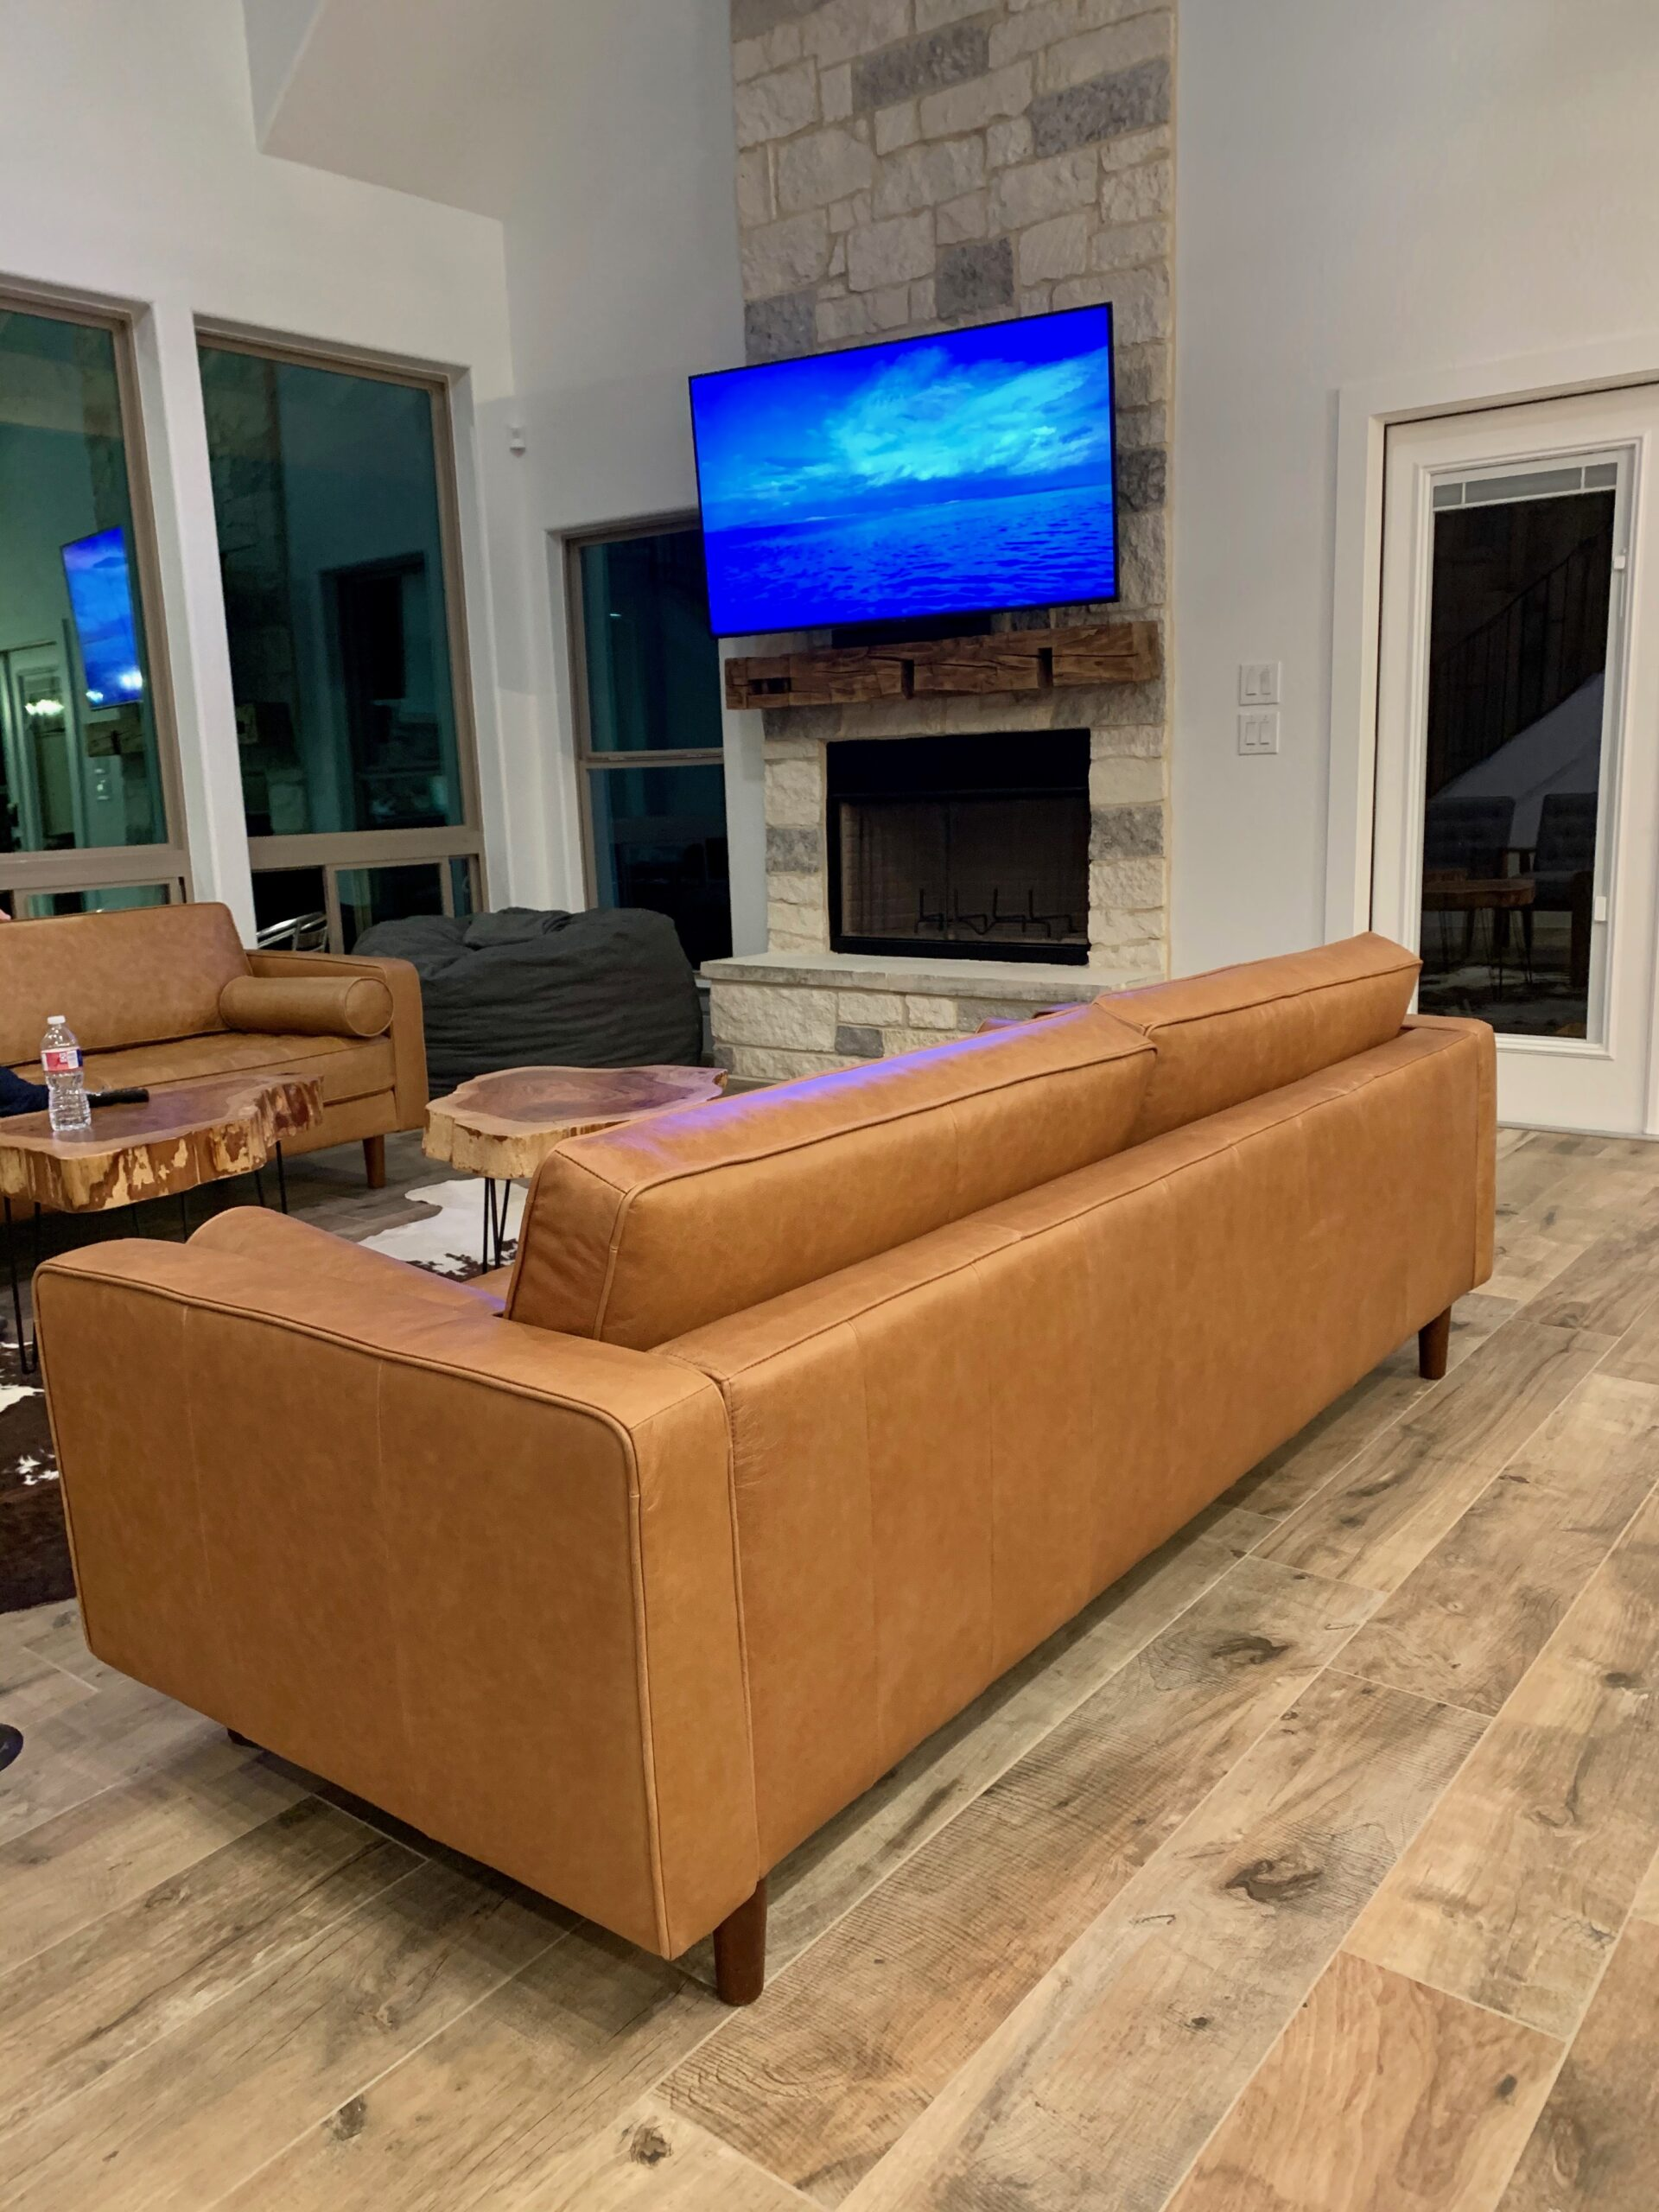 Smart integrated media room with TV installed above fireplace